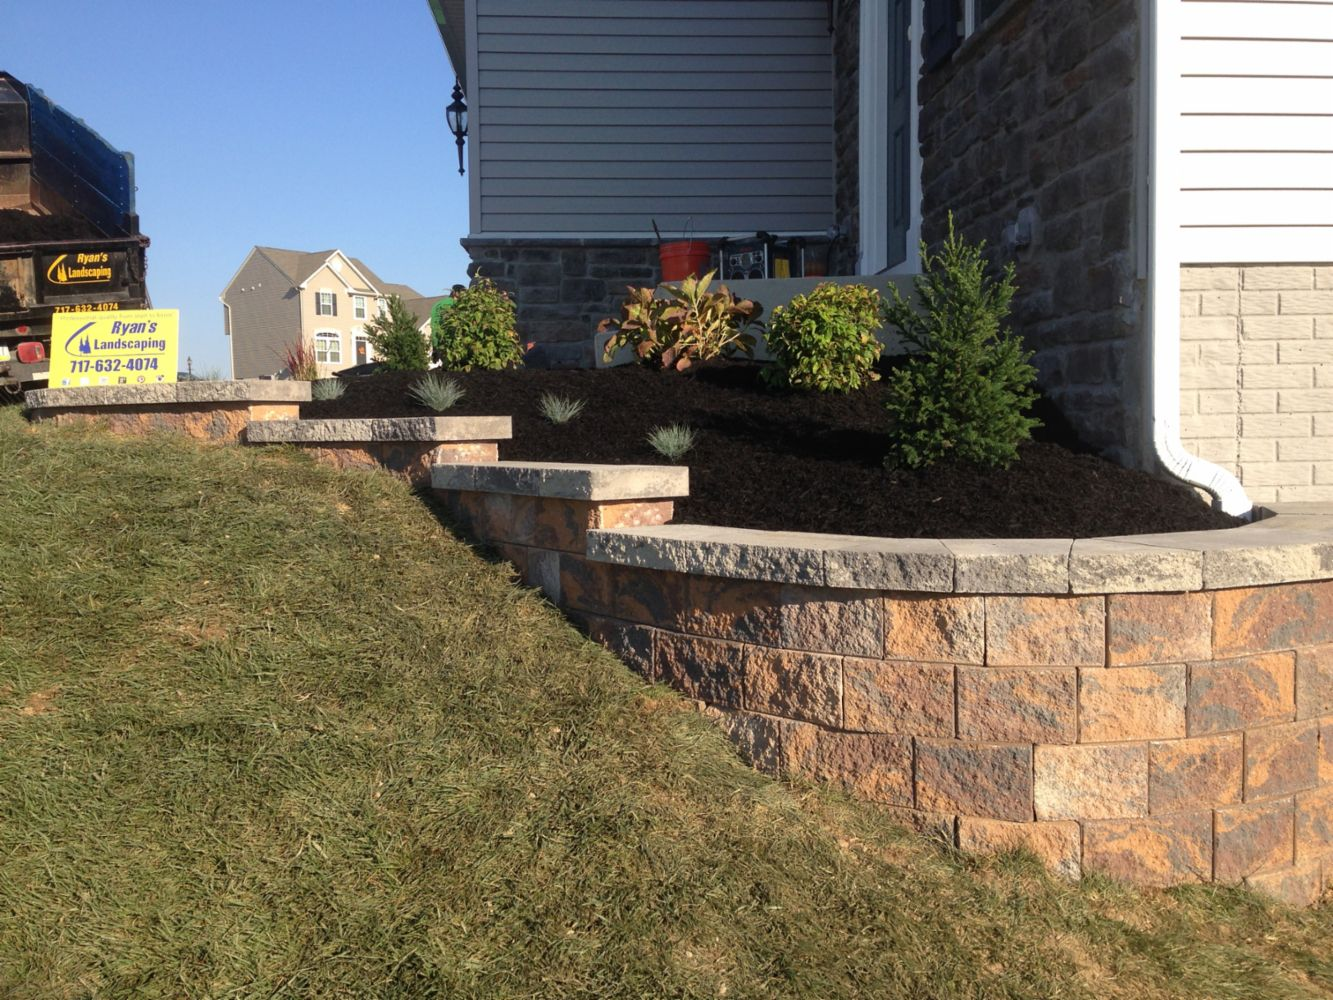 Landscape Architect Retaining Wall : Professional landscape and hardscape construction in